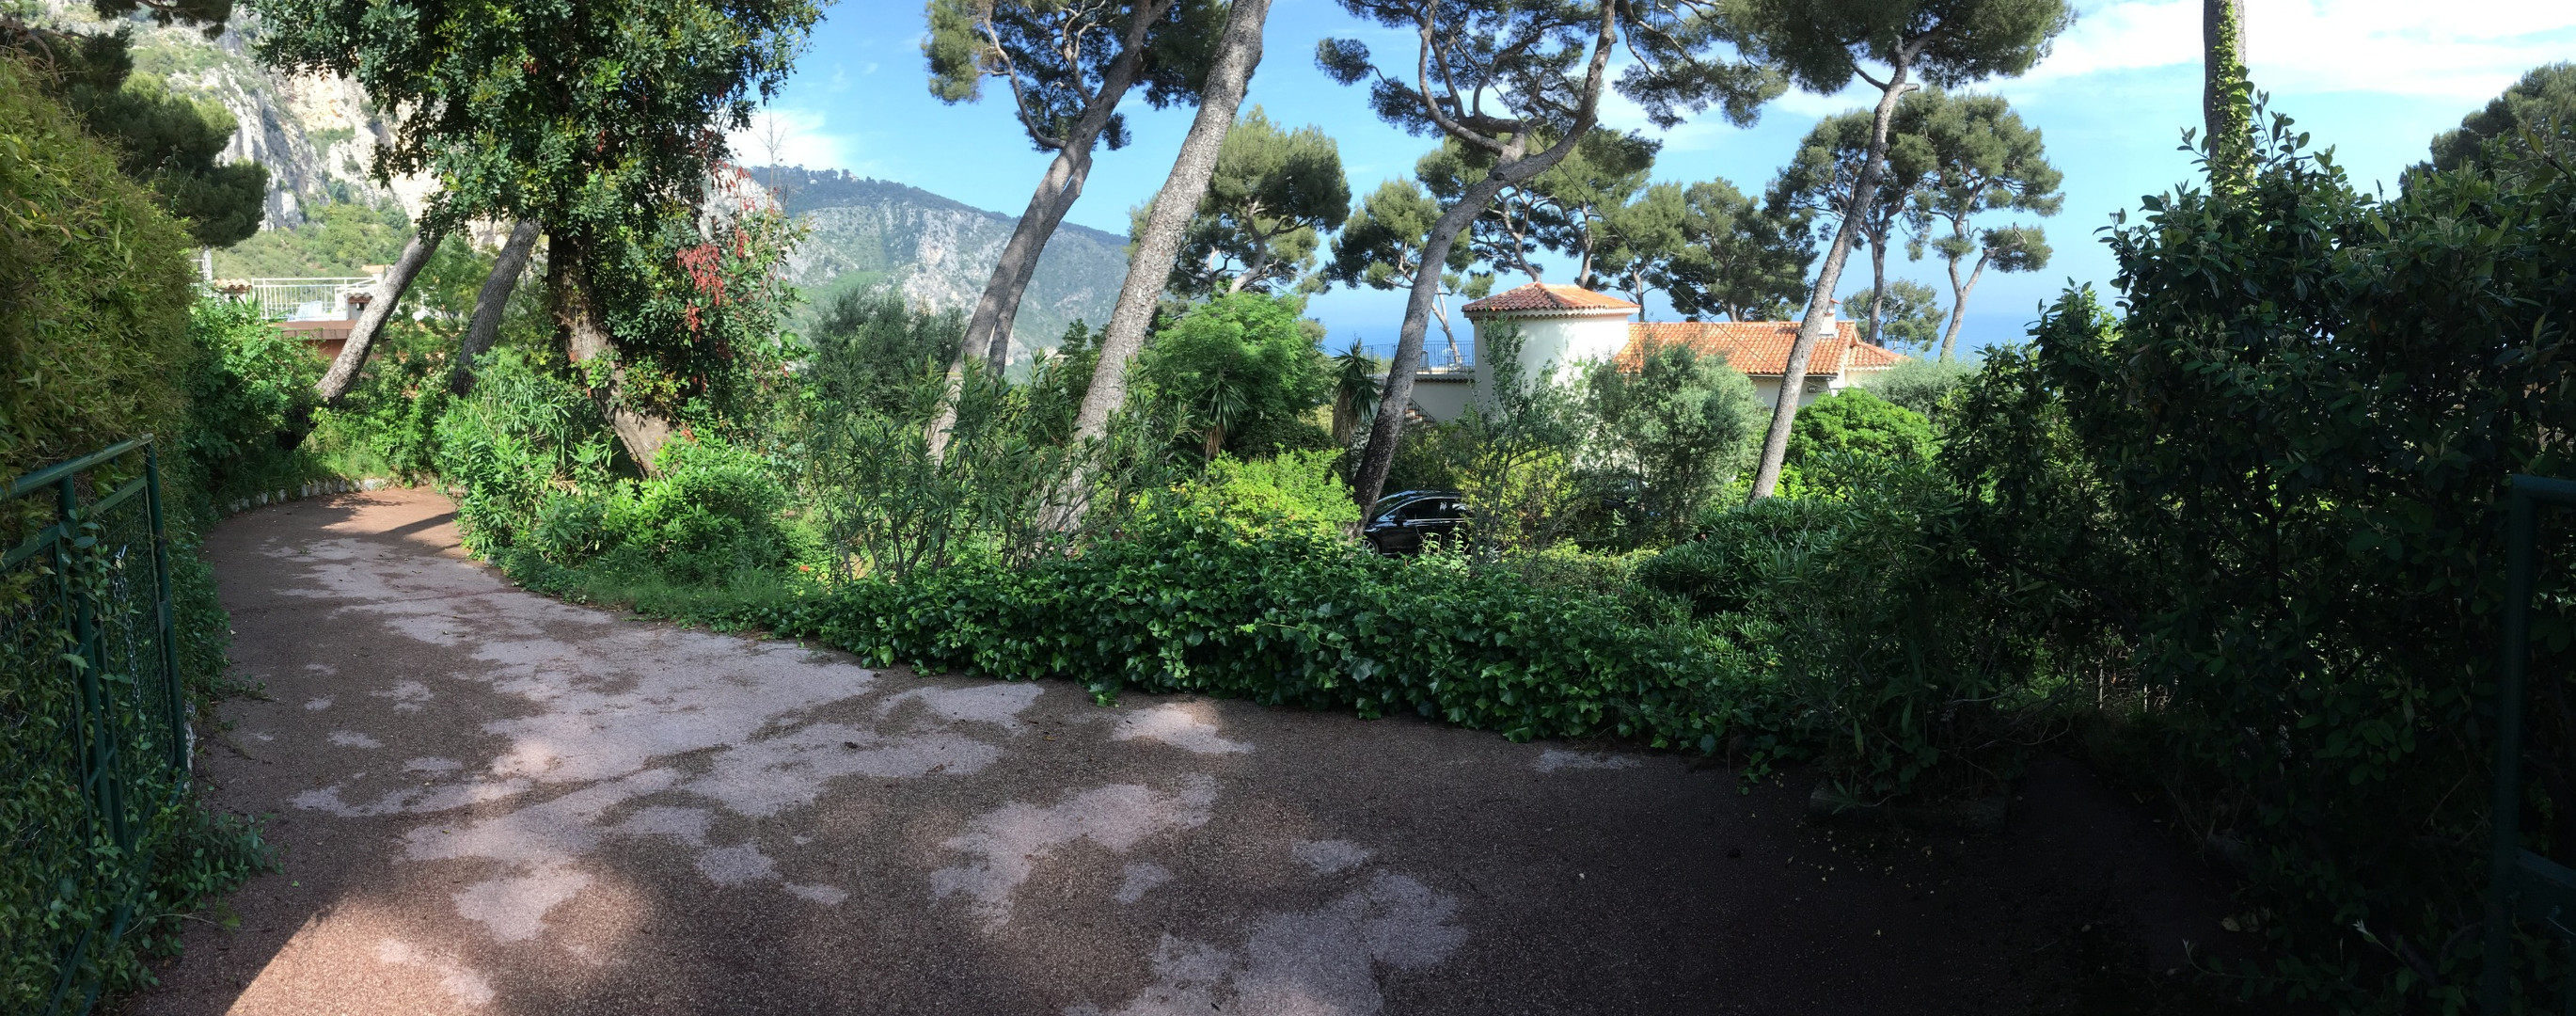 Garden view from entrance gate